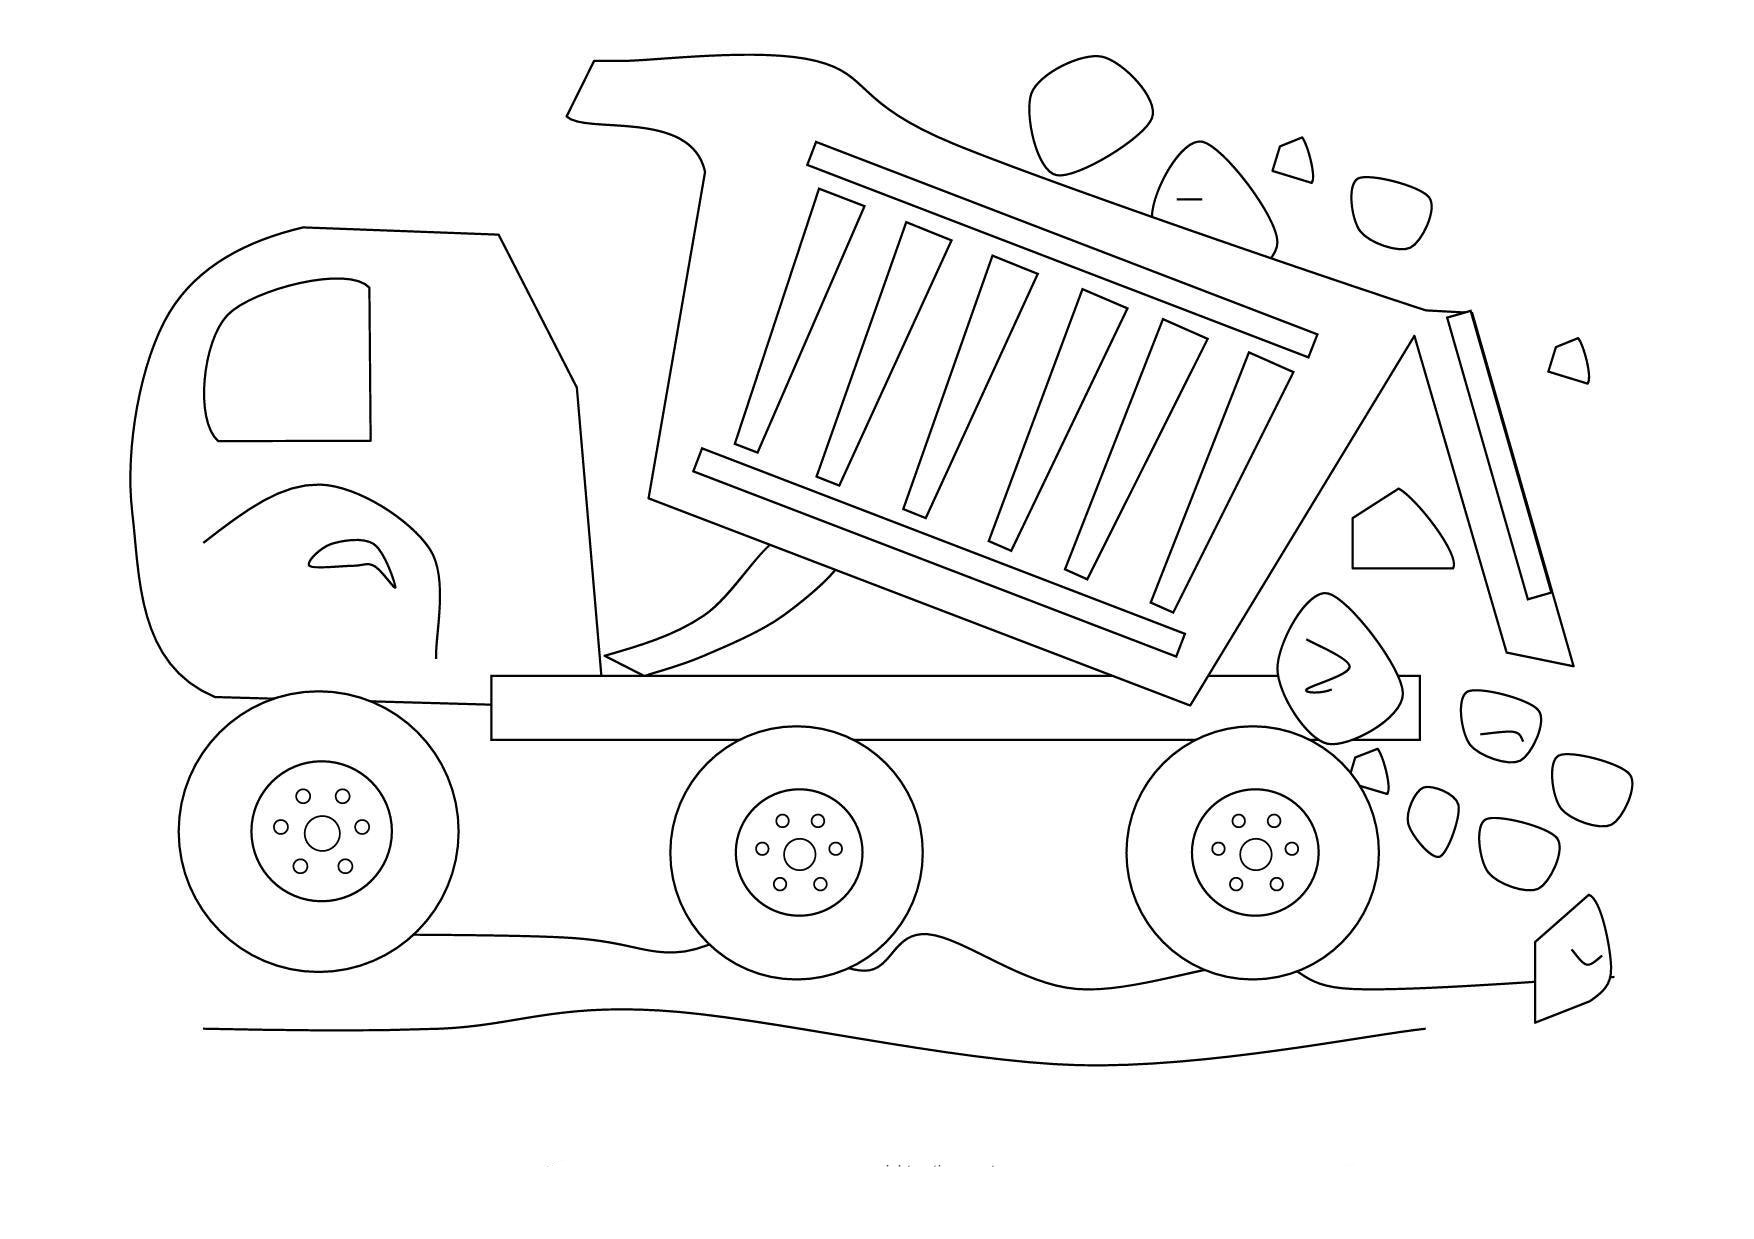 dirty dump truck coloring pages trucks - Construction Trucks Coloring Pages